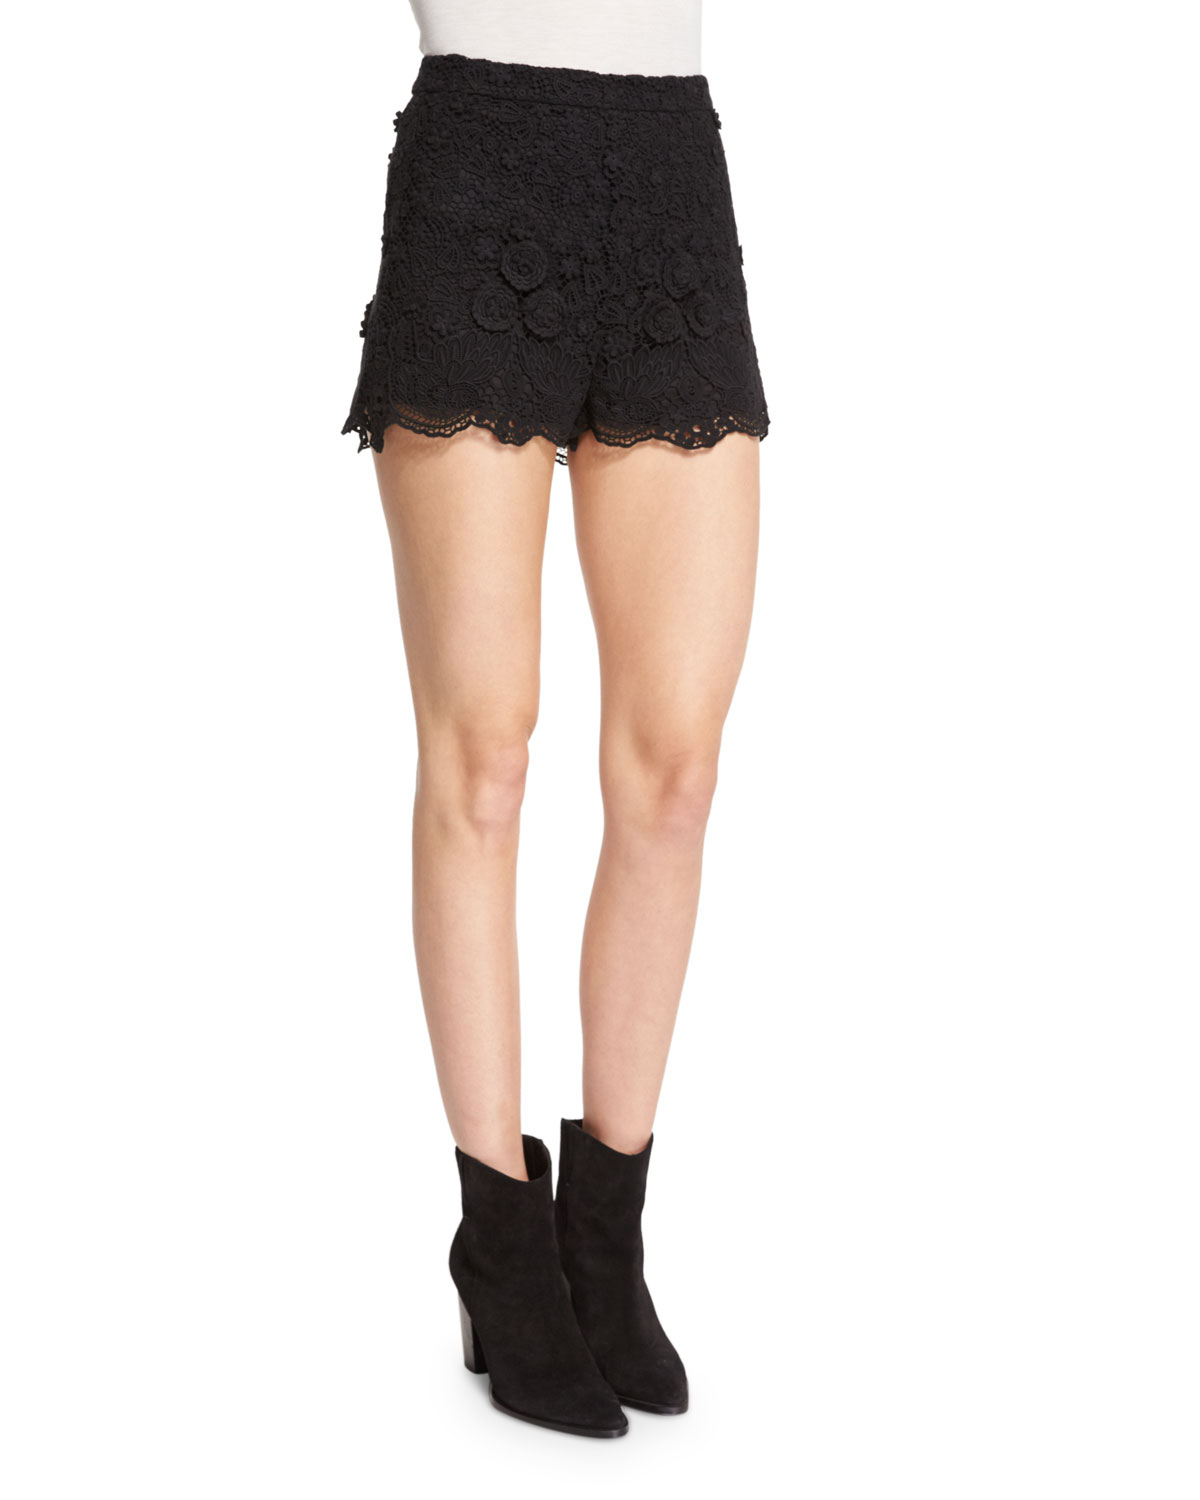 Macrame Scalloped Shorts, Black